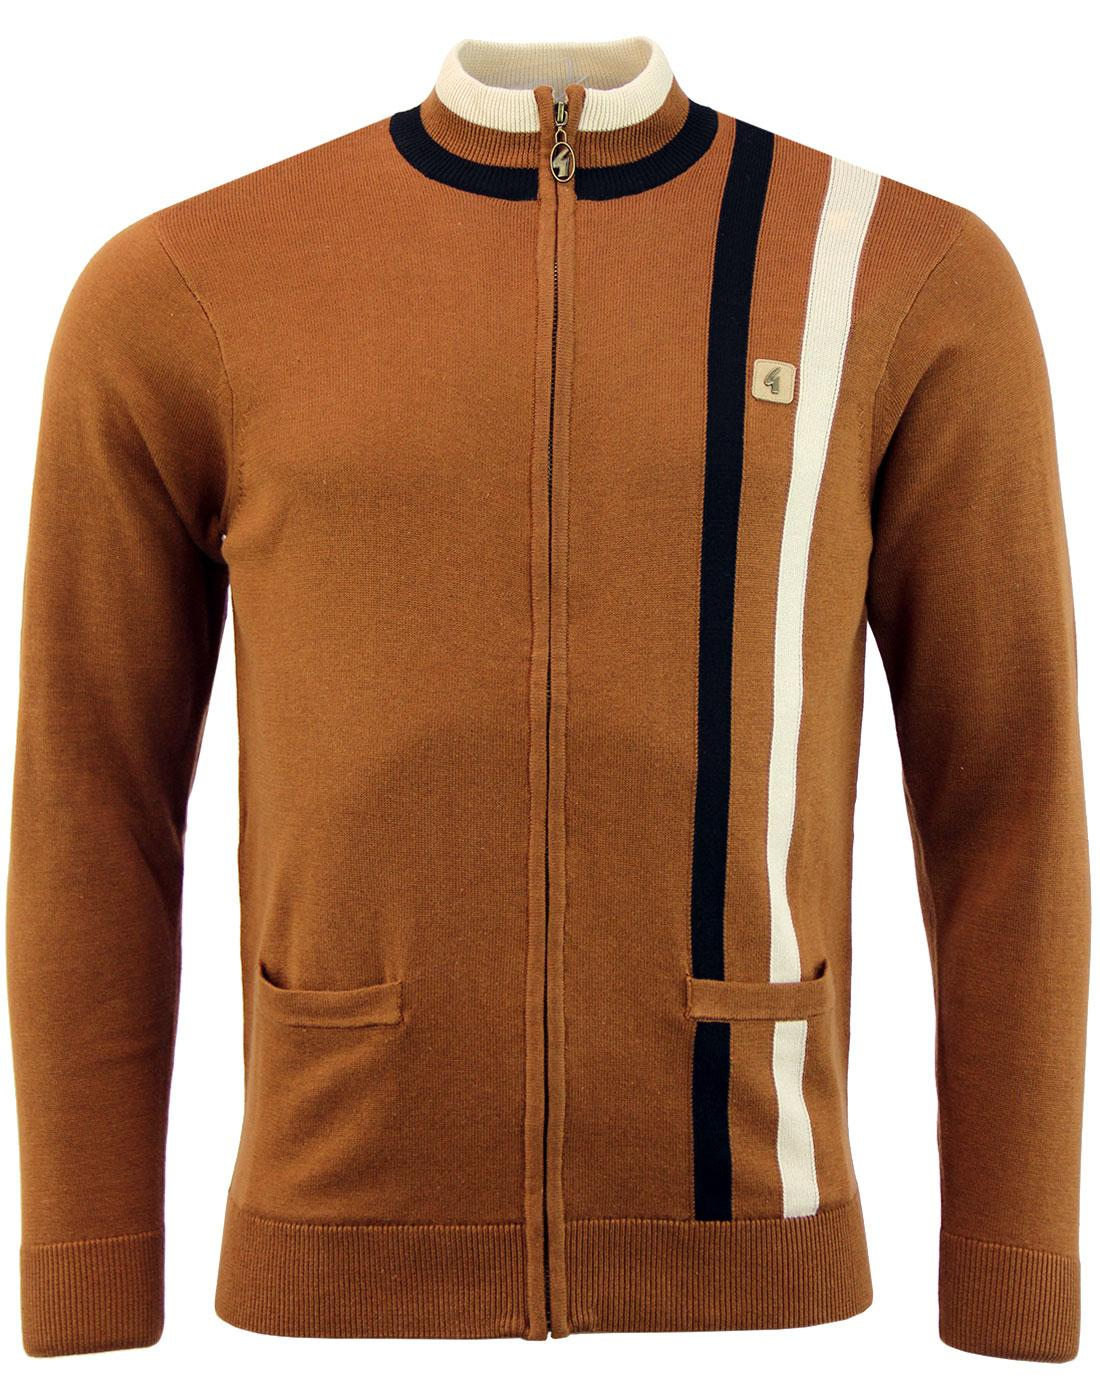 Forum GABICCI VINTAGE Retro Knitted Track Top (T)